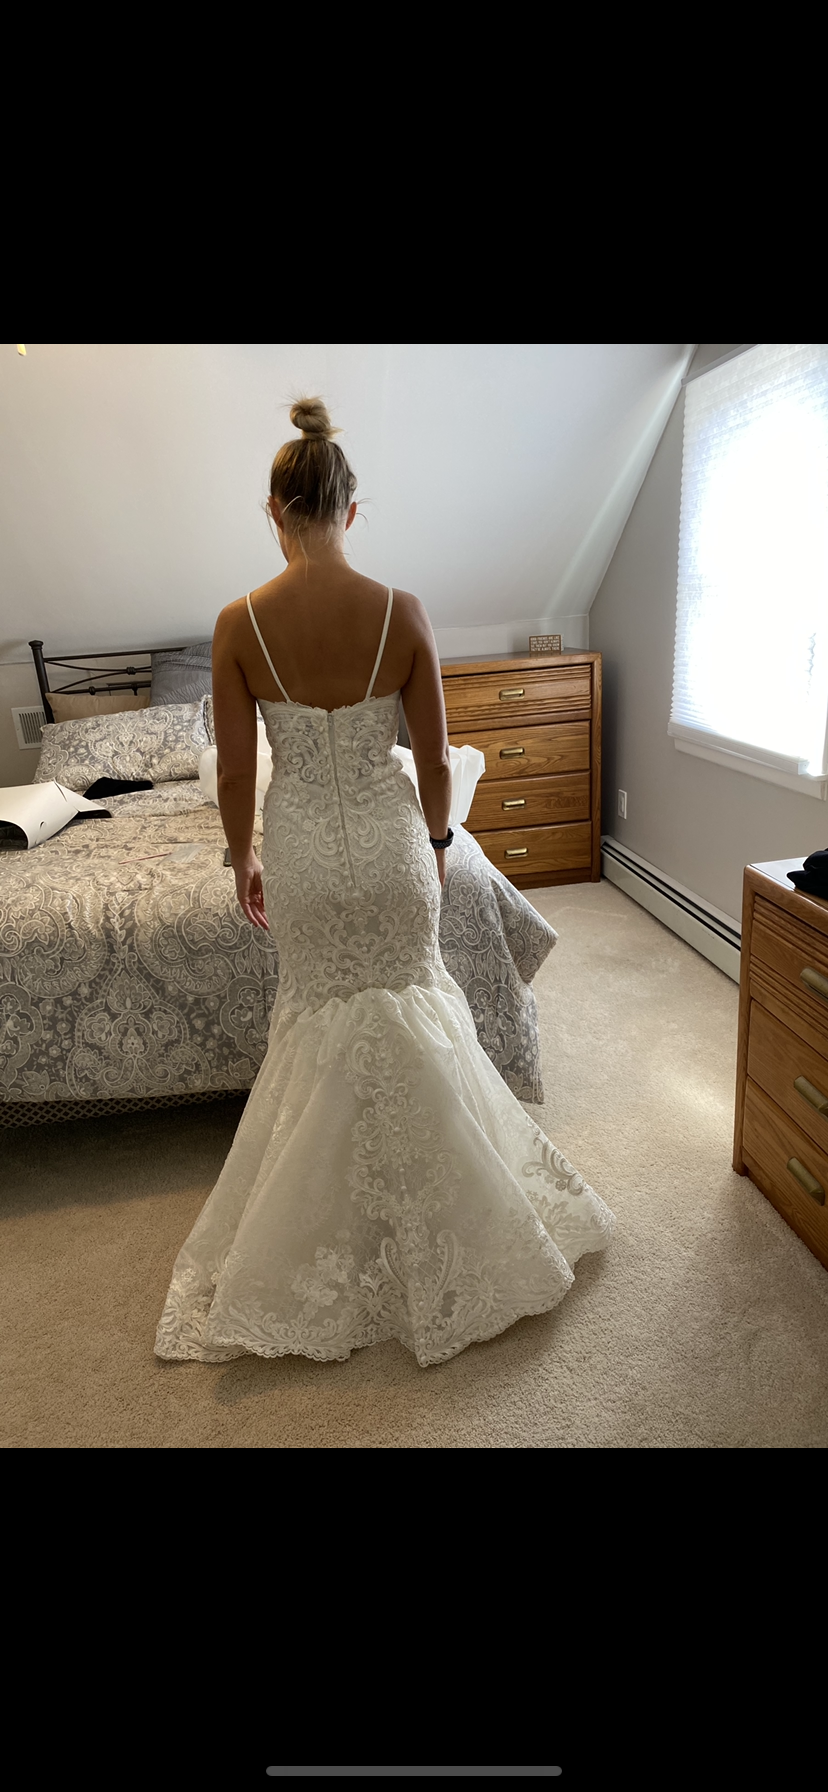 Allure bridals - 9666 size 6 - $2300 - (11% OFF)